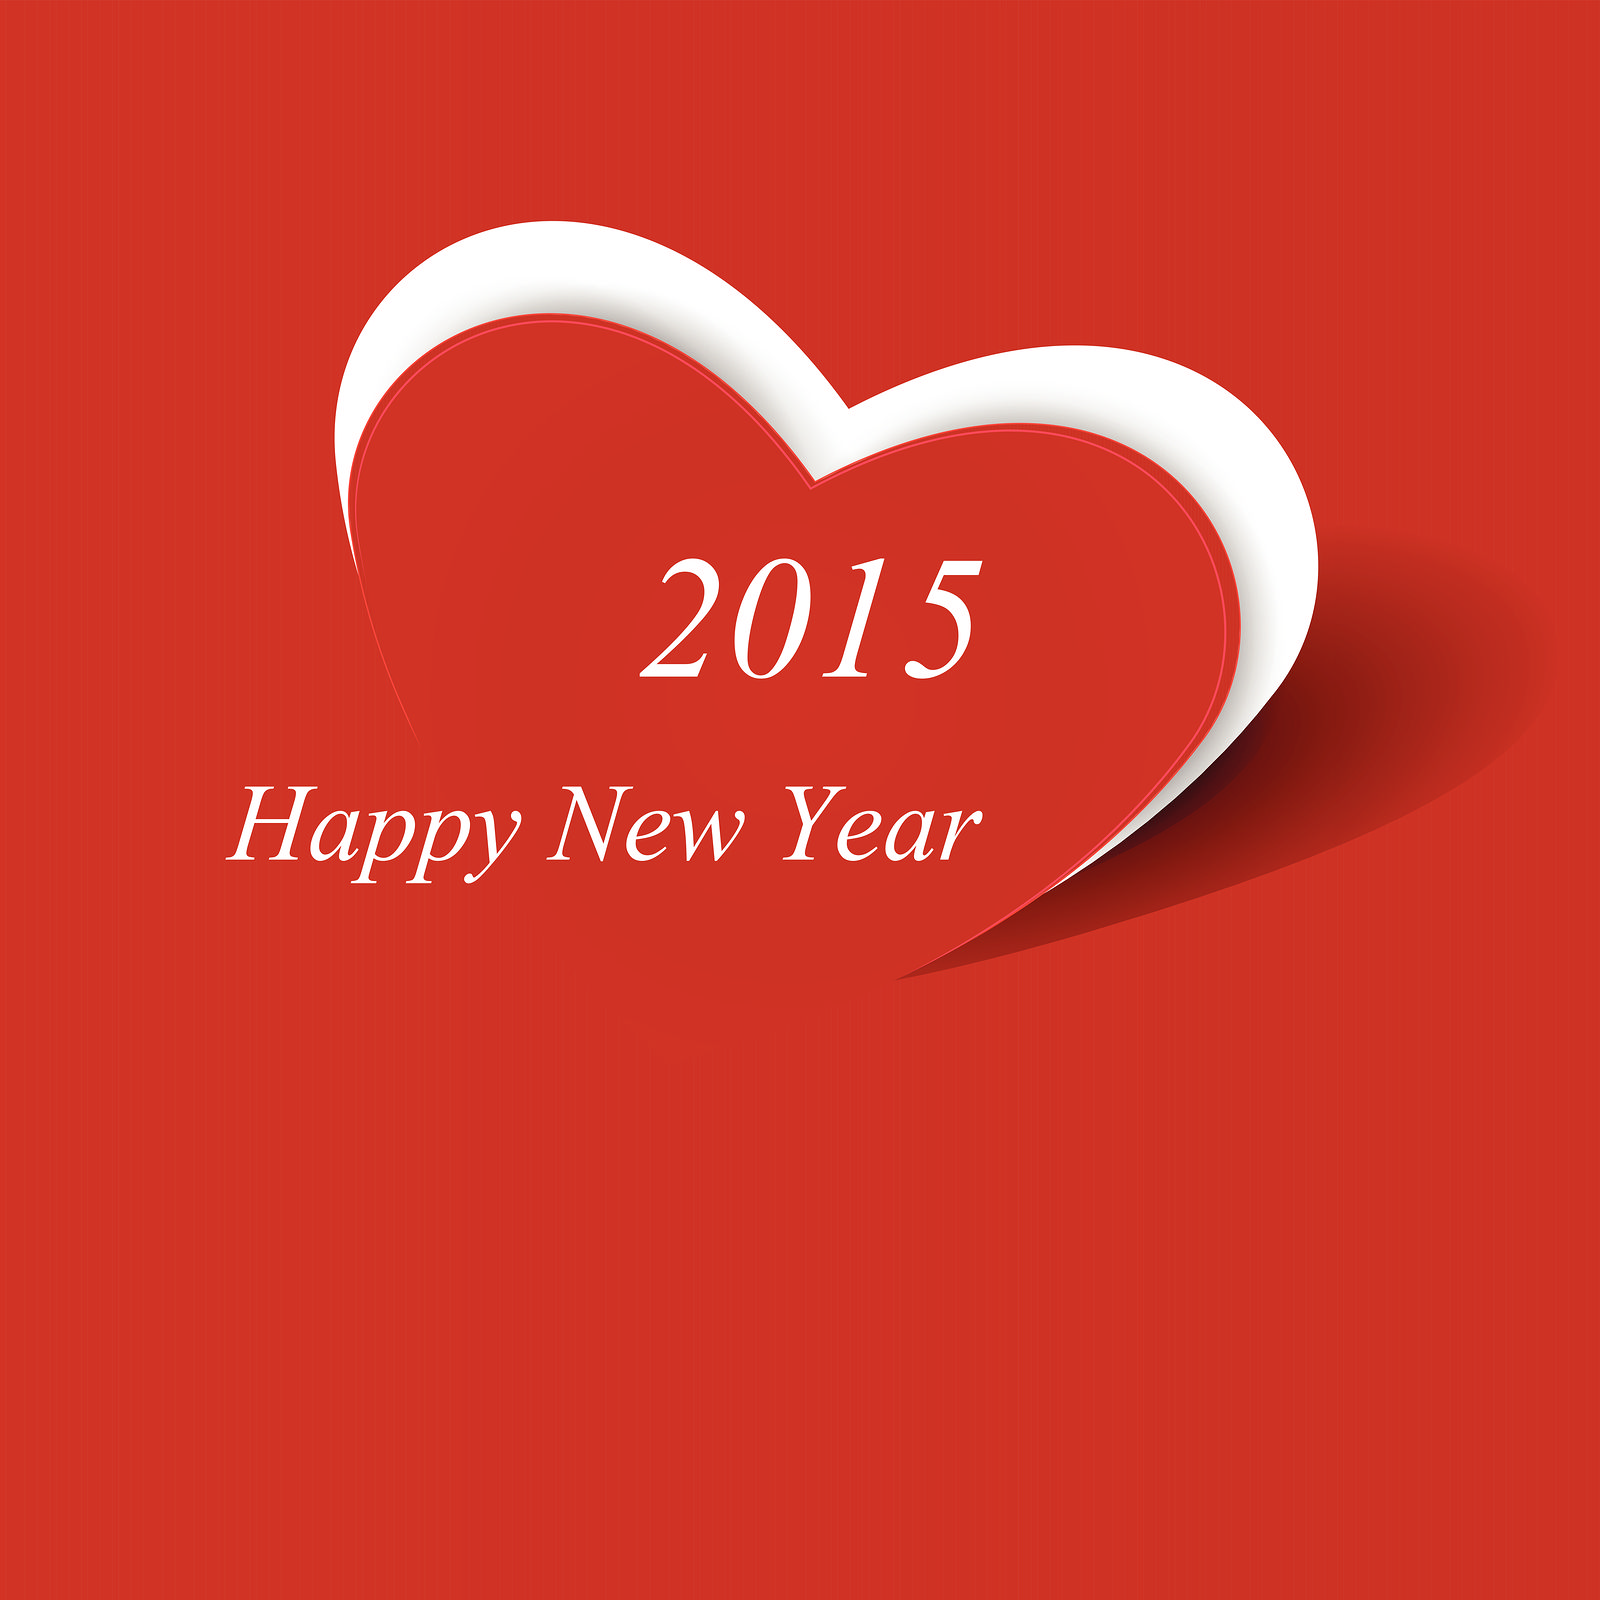 happy new year 2015 dreaming of the new 60 exquisite happy new year wallpaper 2015 kristyandbryce Choice Image